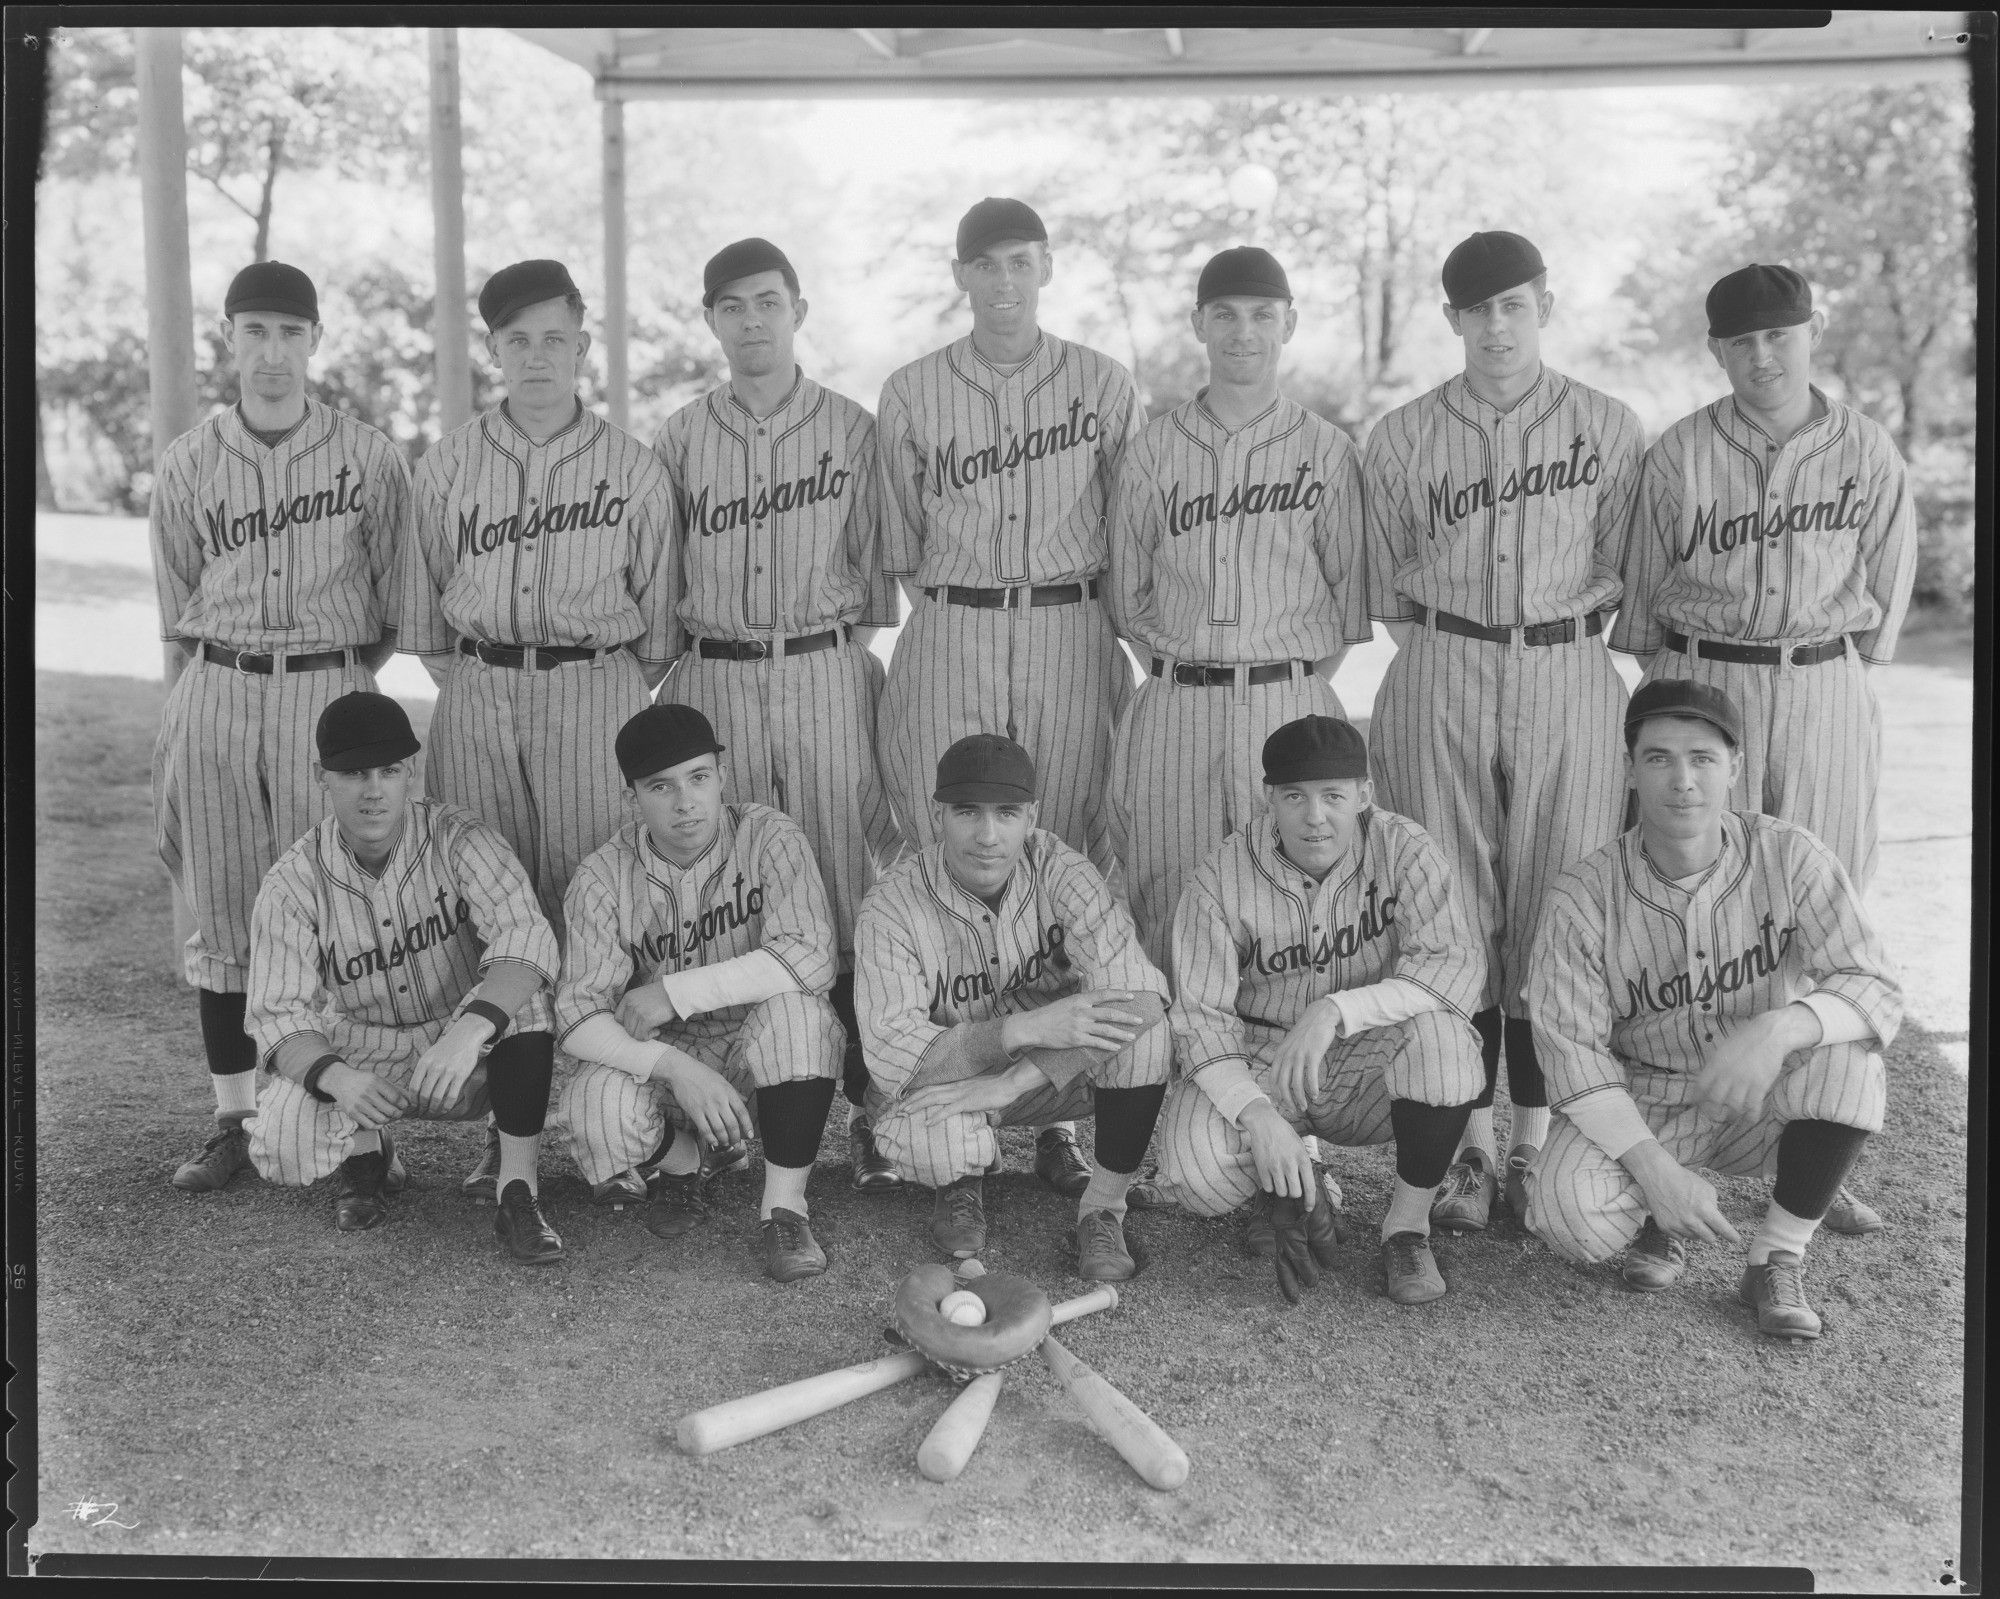 Monsanto Chemical Works Baseball Team Posed At Jones Park In East St Louis Illinois Photograph Taken By Harold Snec East St Louis Historical Society History